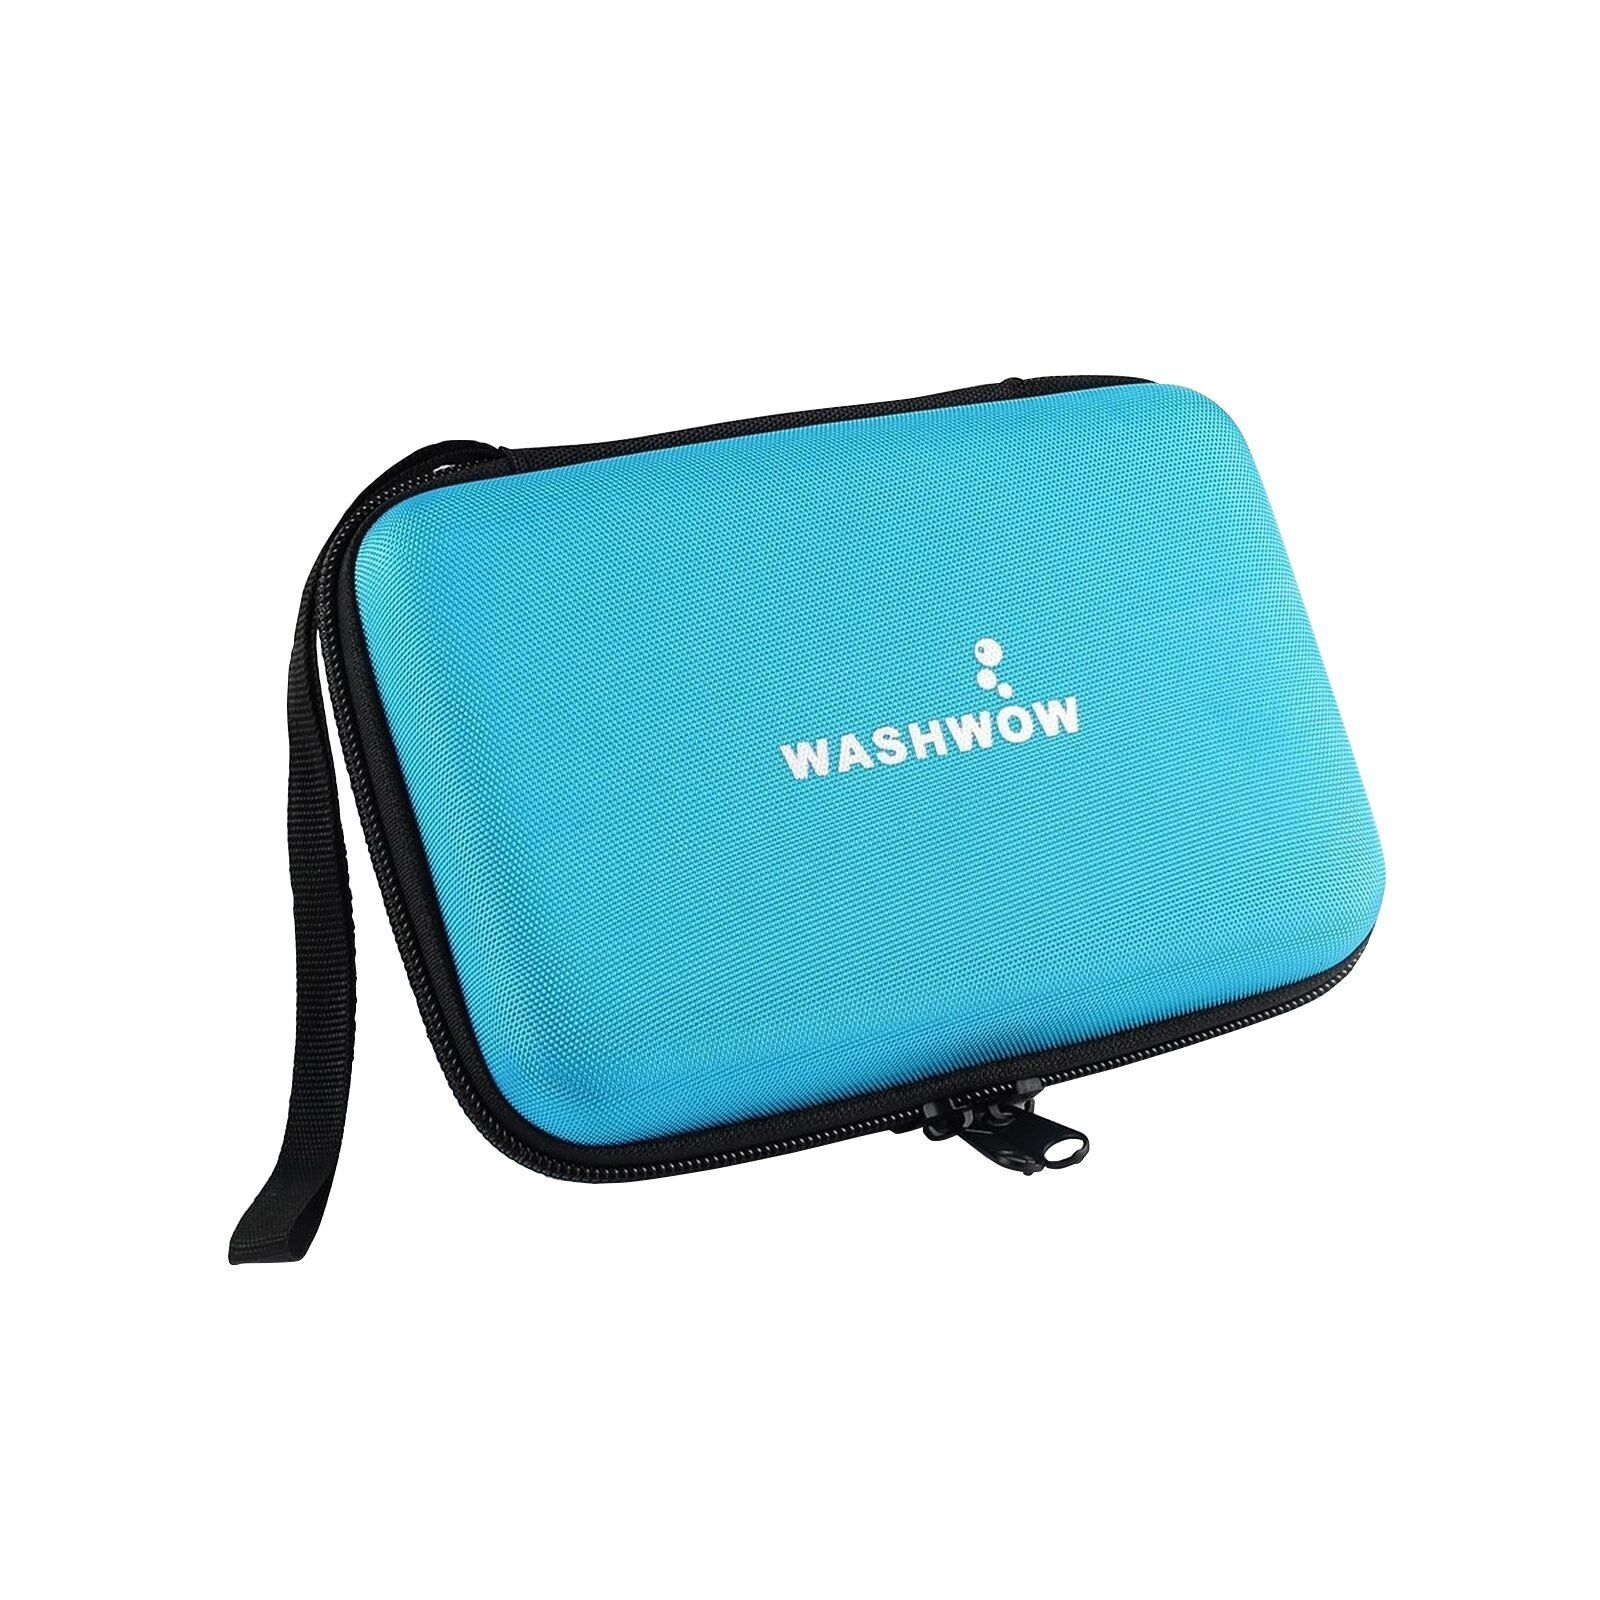 Washwow Turelar Portable Wash Travel Washer Machine